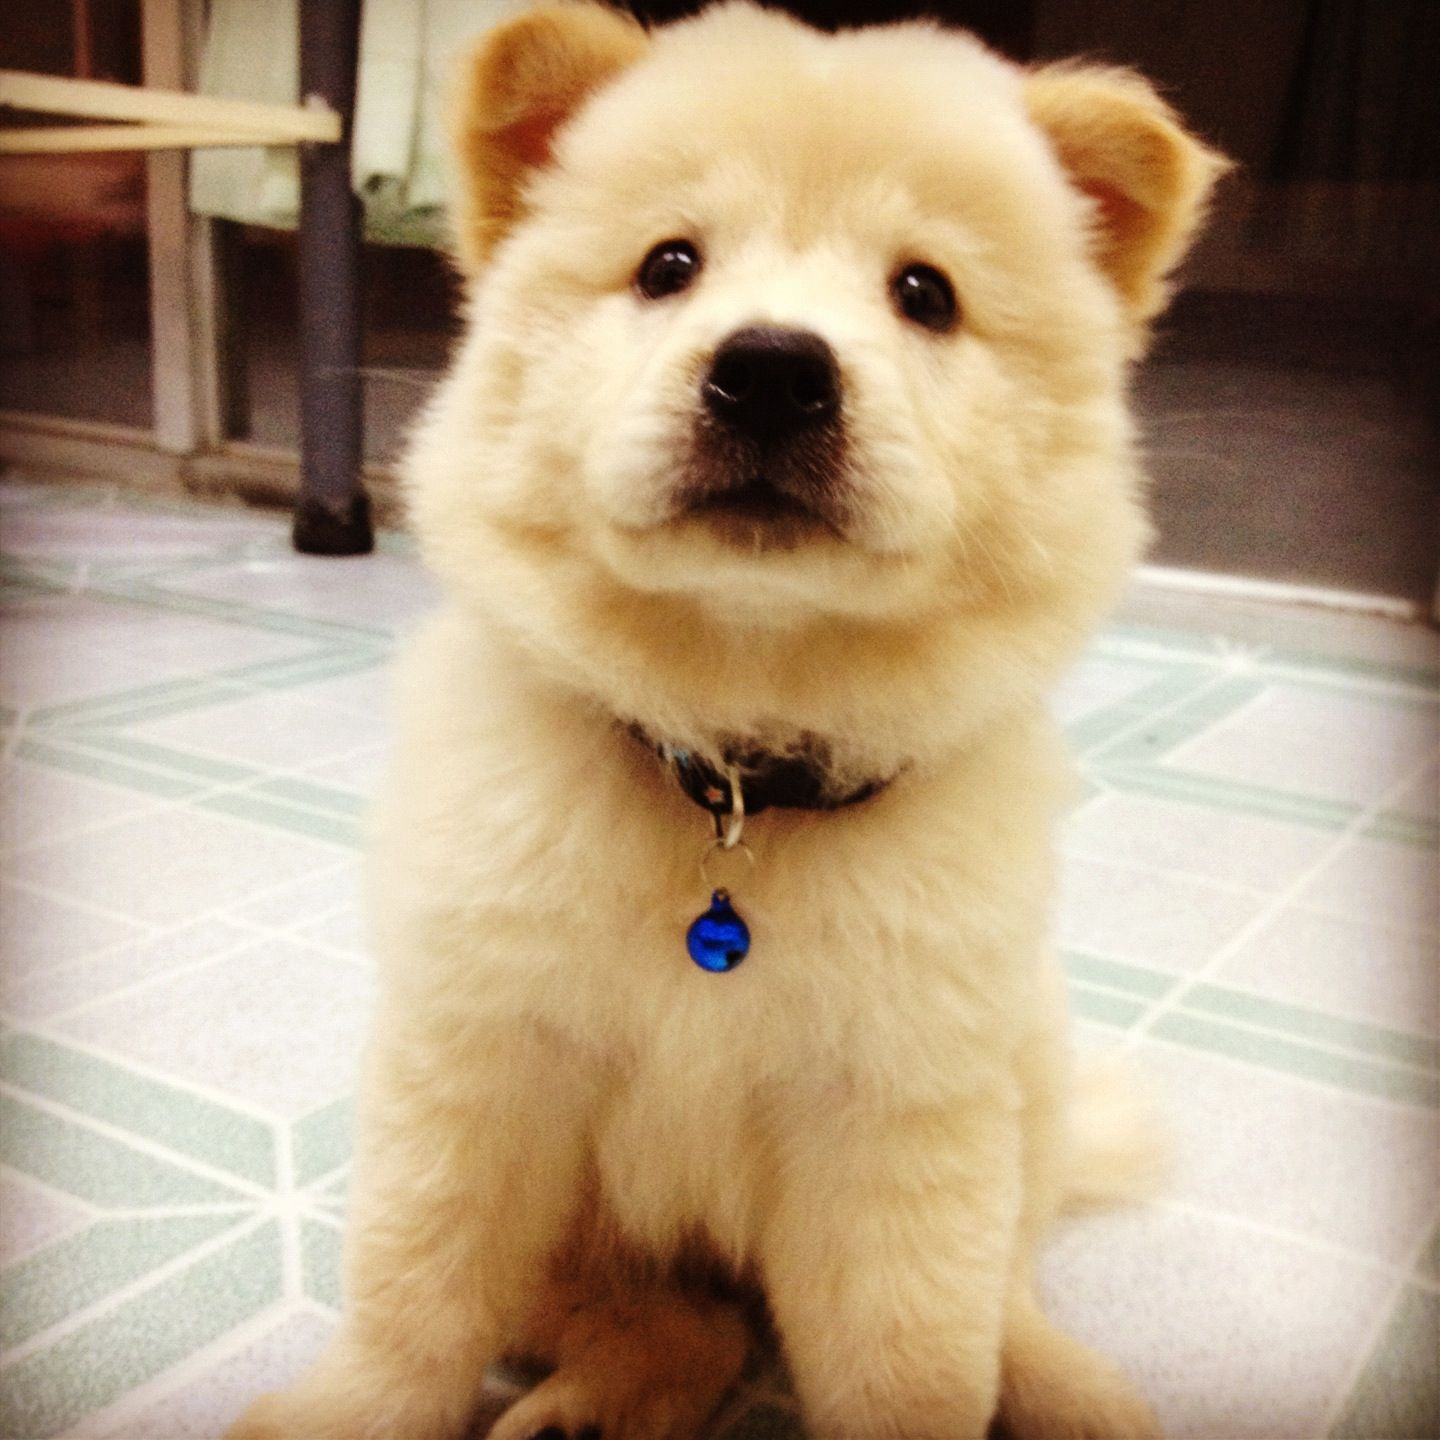 Beautiful Mixed Chubby Adorable Dog - dfad9e11d9157fc4ef9c57dcf5c9e9bb  Picture_68753  .jpg